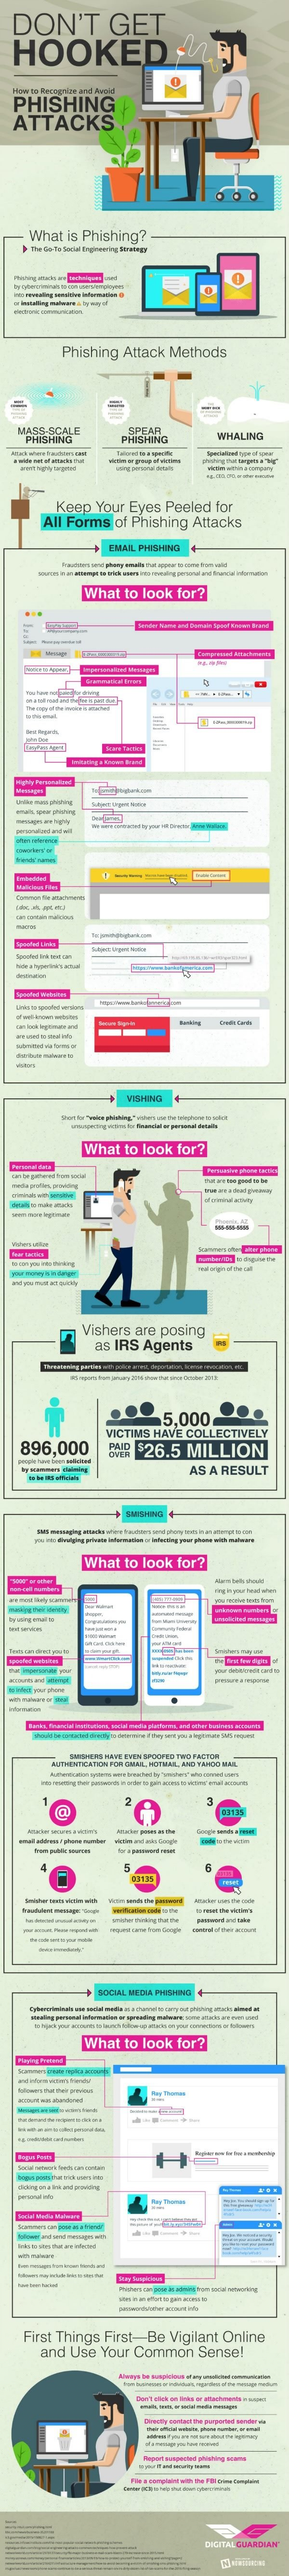 phising attacks infographic